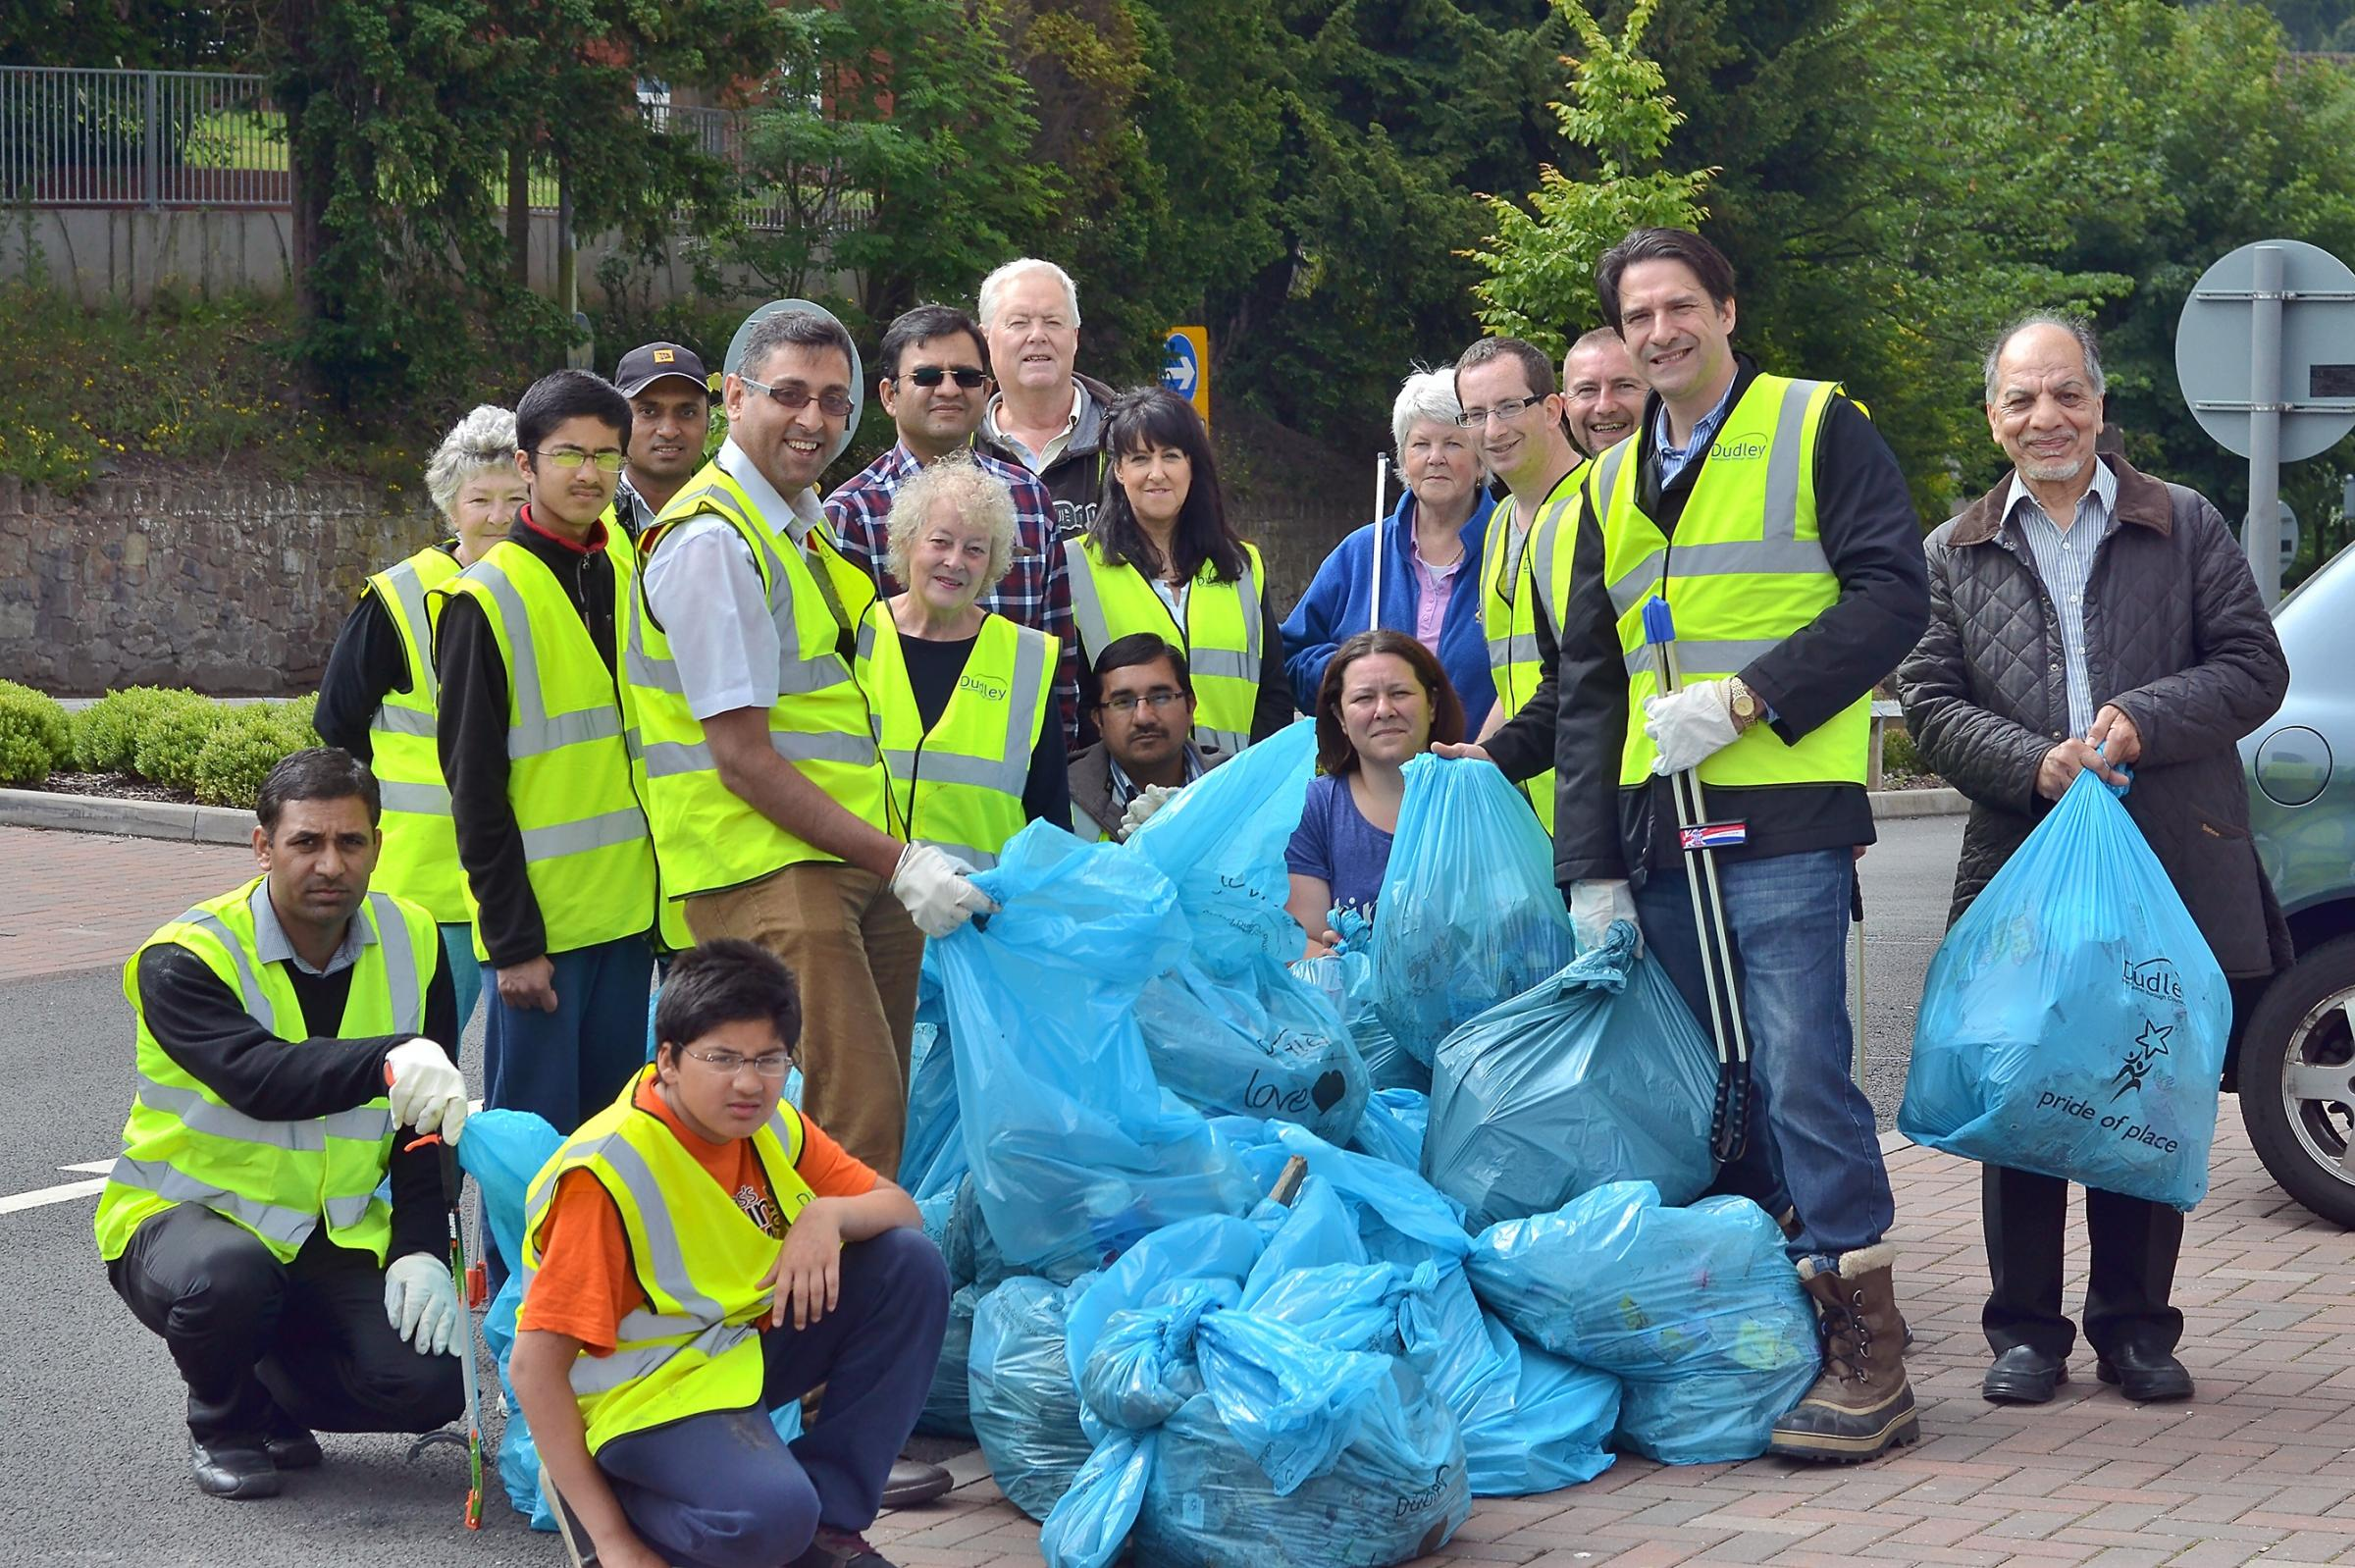 Hard days work: The volunteers who helped clean up Halesowen